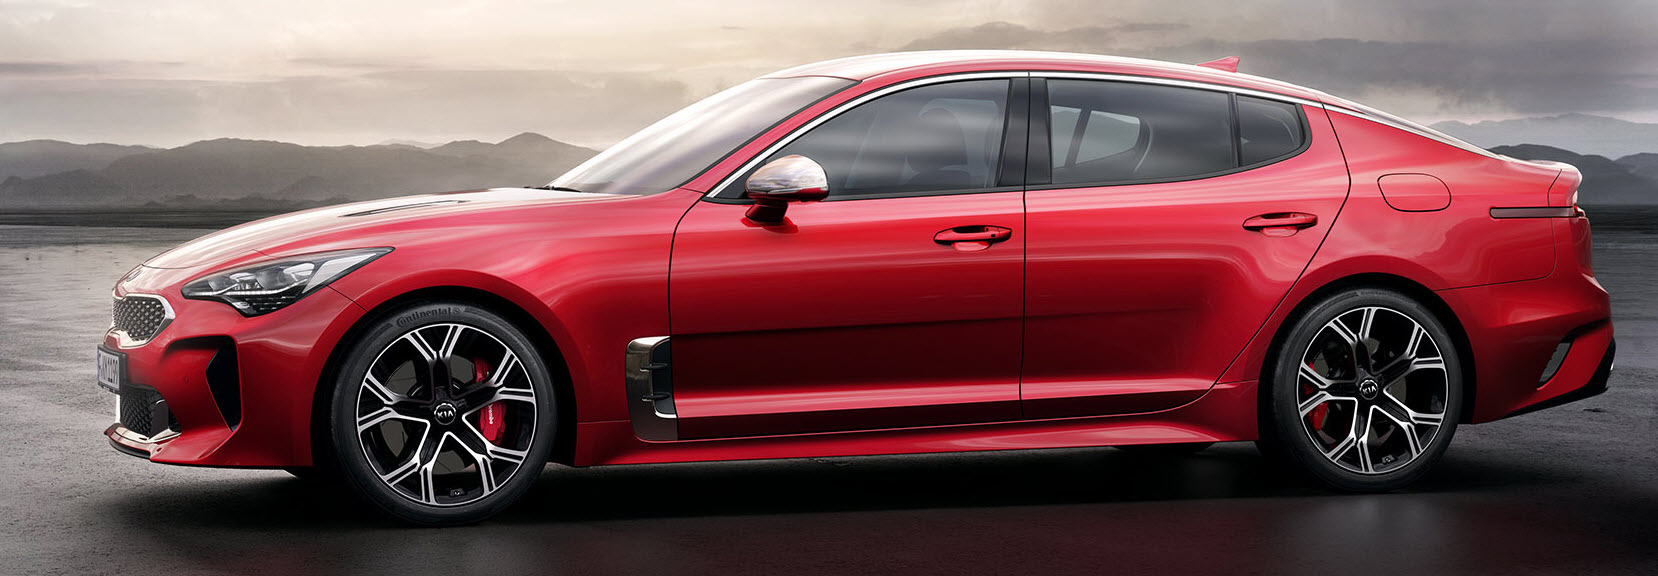 Kia Stinger_grand tourismo-design